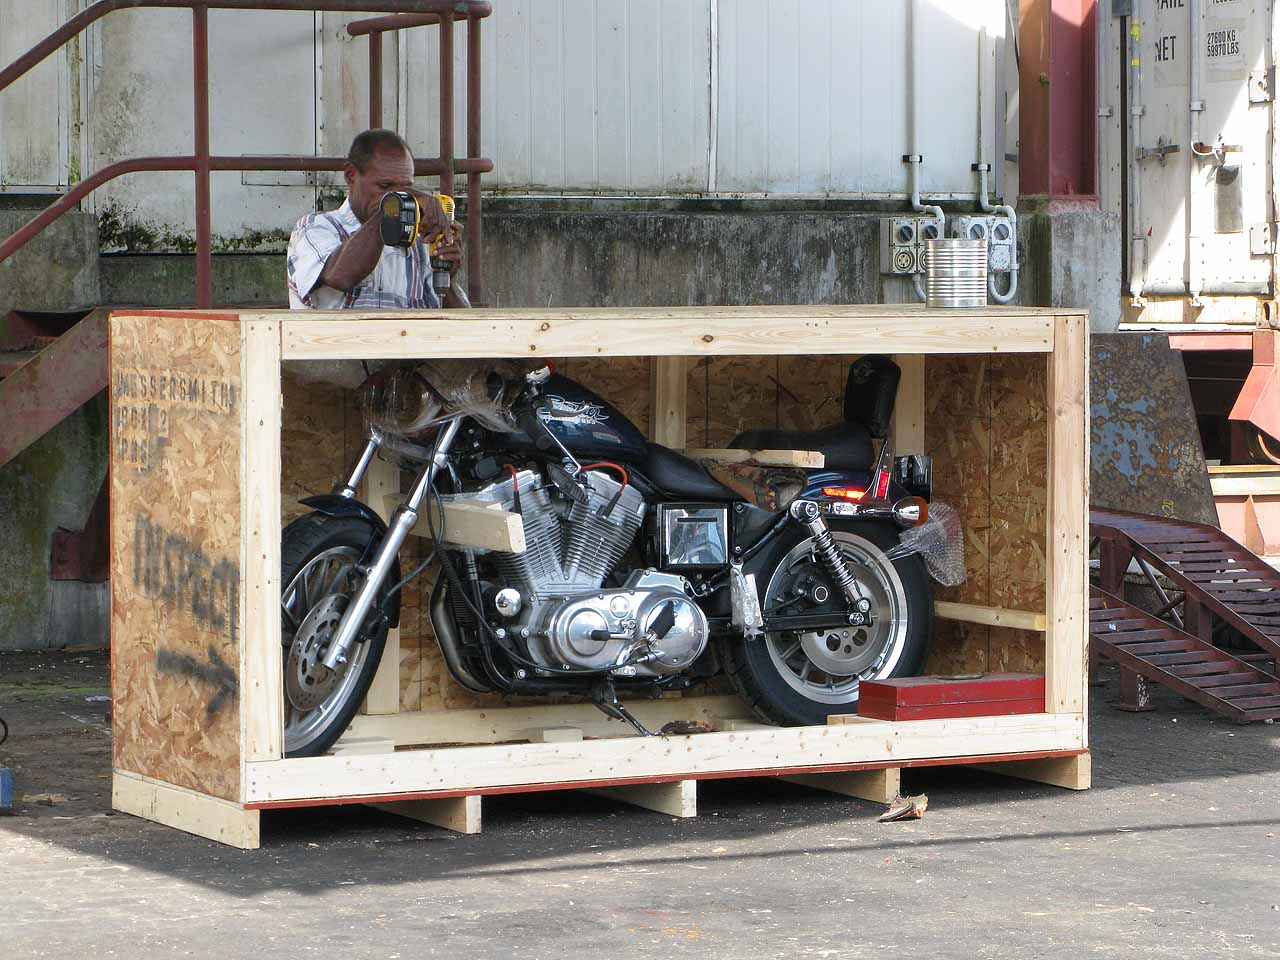 The Harley Comes to Madang